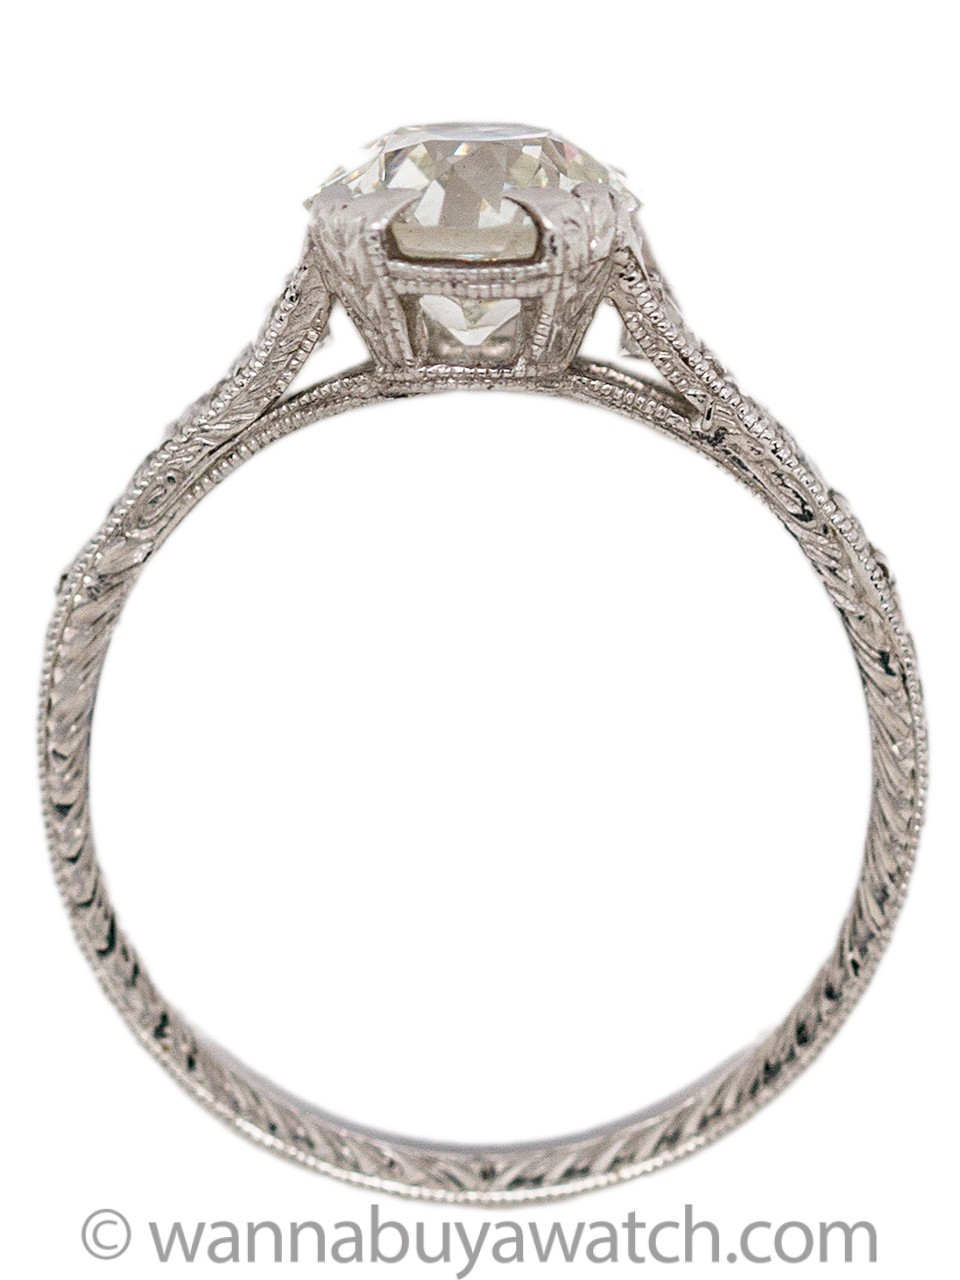 Hand Engraved Edwardian Style Engagement Ring Platinum 1.63ct OEC G-VS1